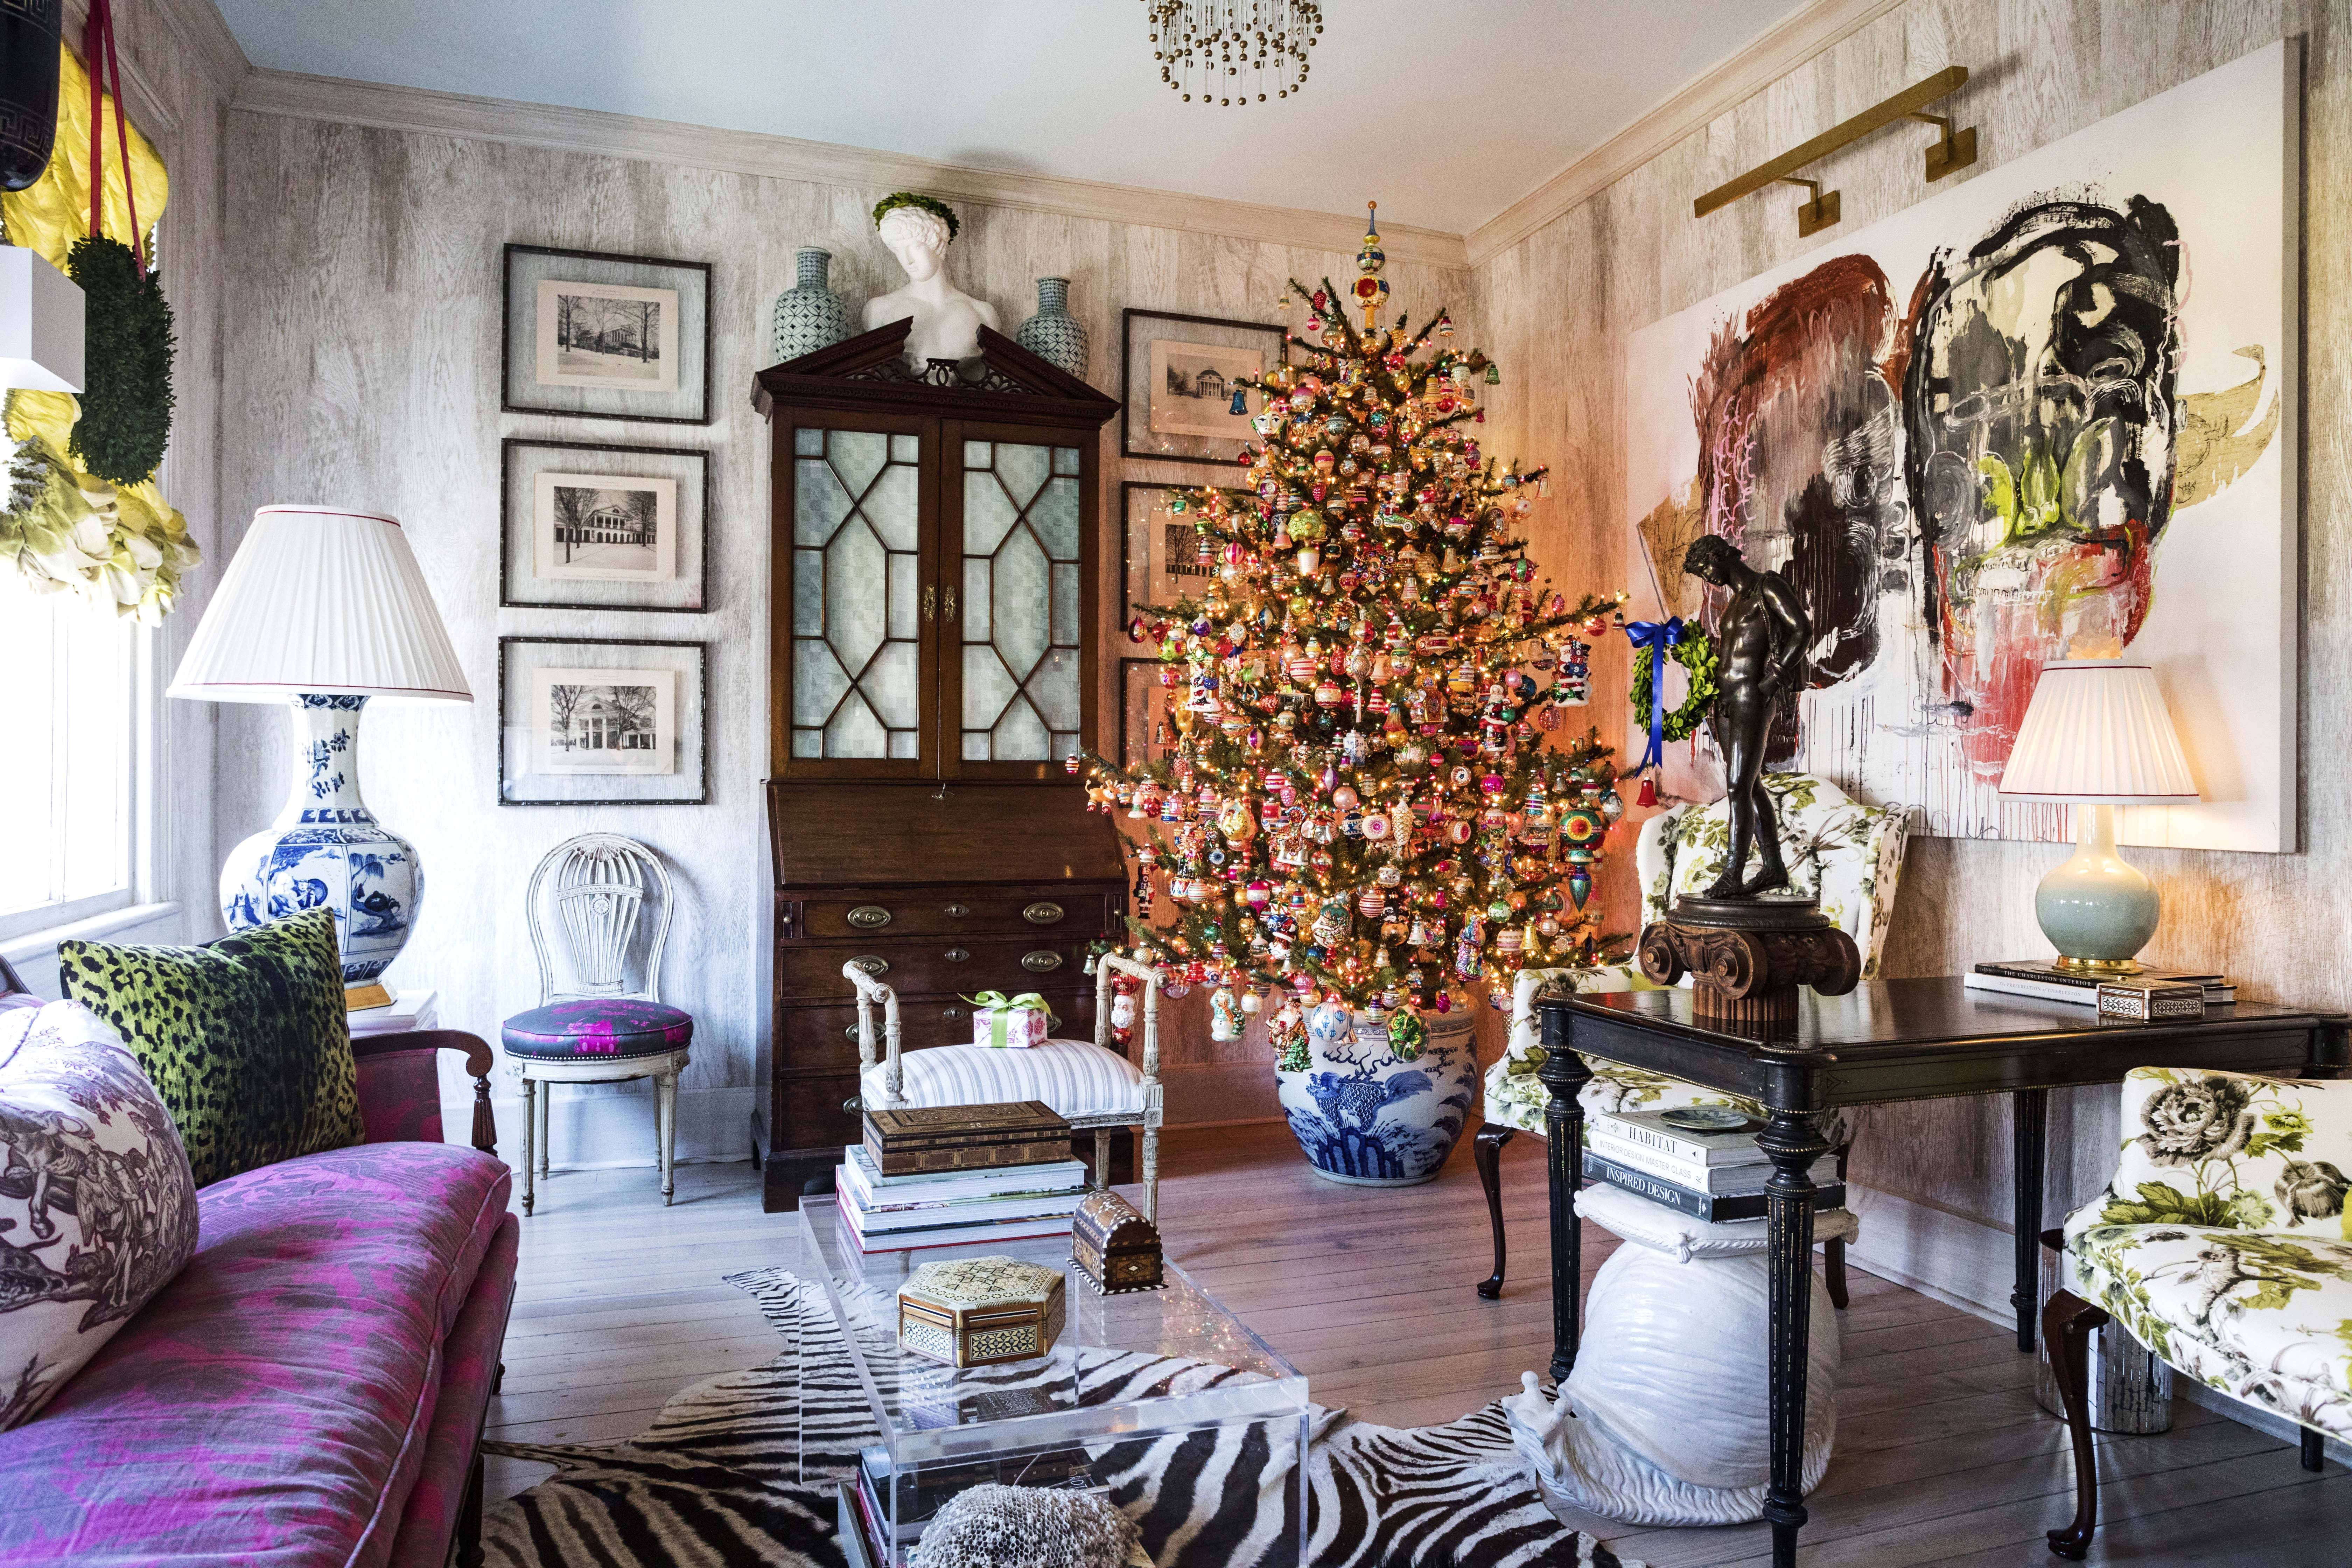 Christmaximalism: Why This Is the Year to Go All Out With Holiday Decor